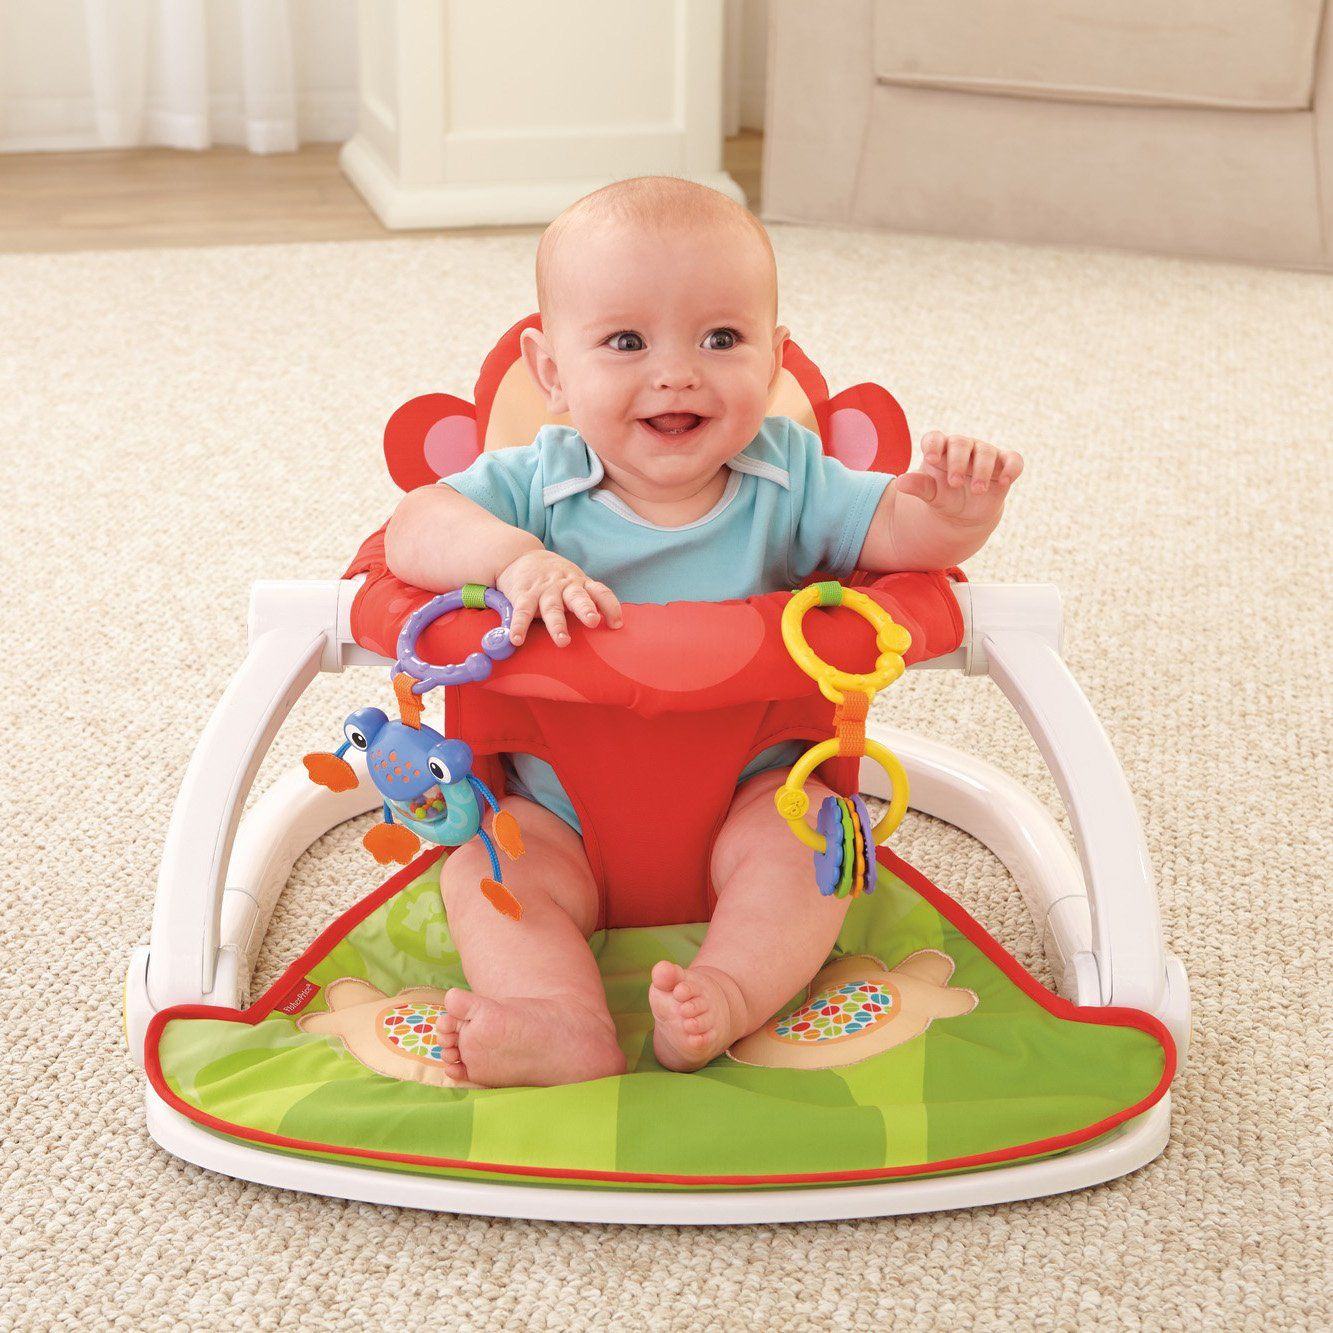 FisherPrice Deluxe SitMeUp Floor Seat * Be Sure To Check